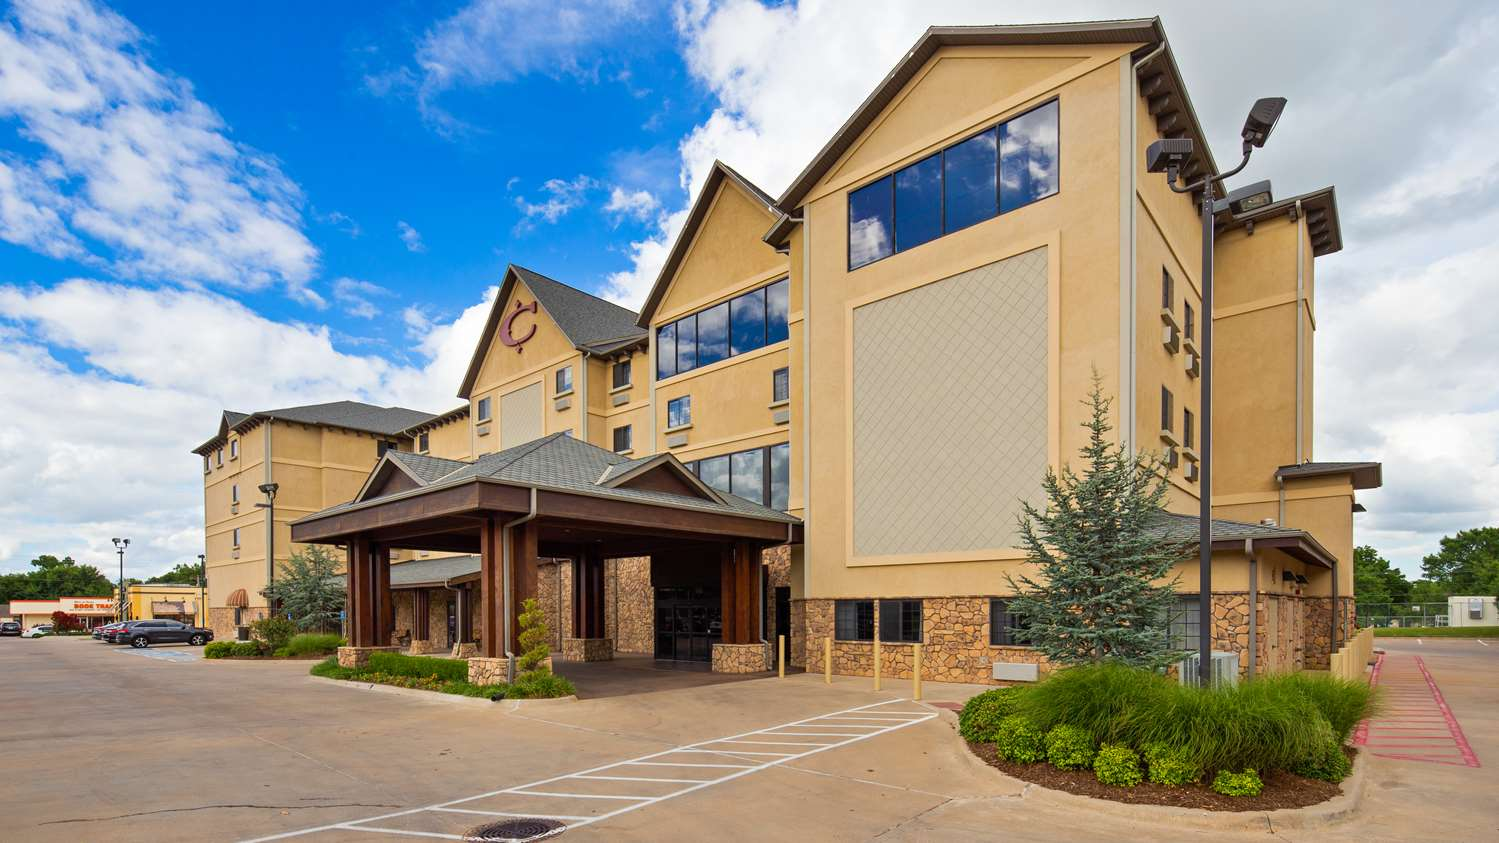 Best Western Plus Cimarron Hotel & Suites    Phone:  (405) 372-2878   Address:  315 N Husband Street Stillwater, Oklahoma 74075   Room blocks, rate and code will be available in mid-October.